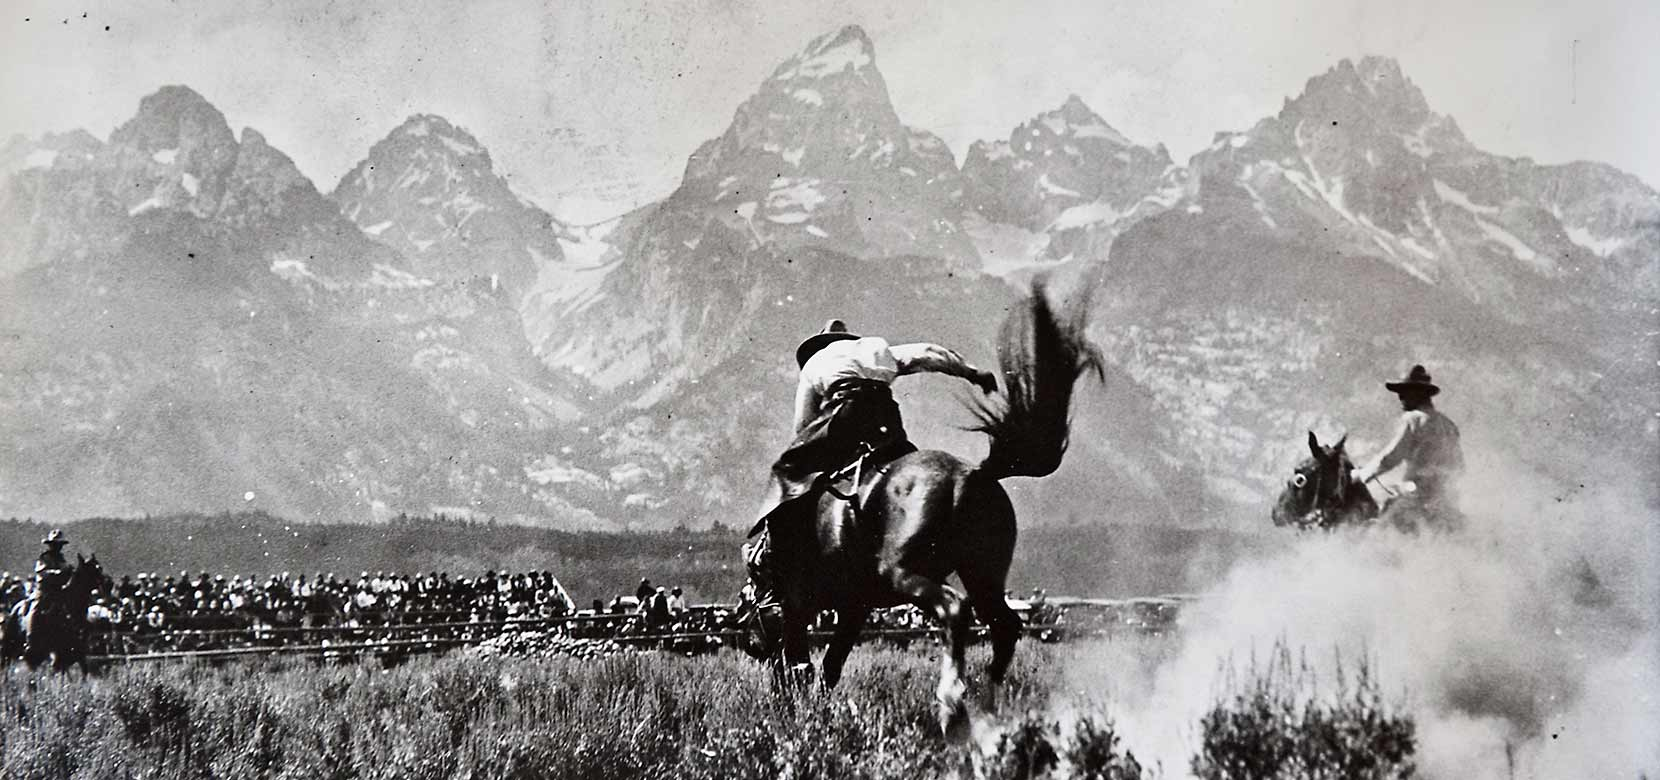 A rodeo at the base of the Grand Tetons, circa 1935.